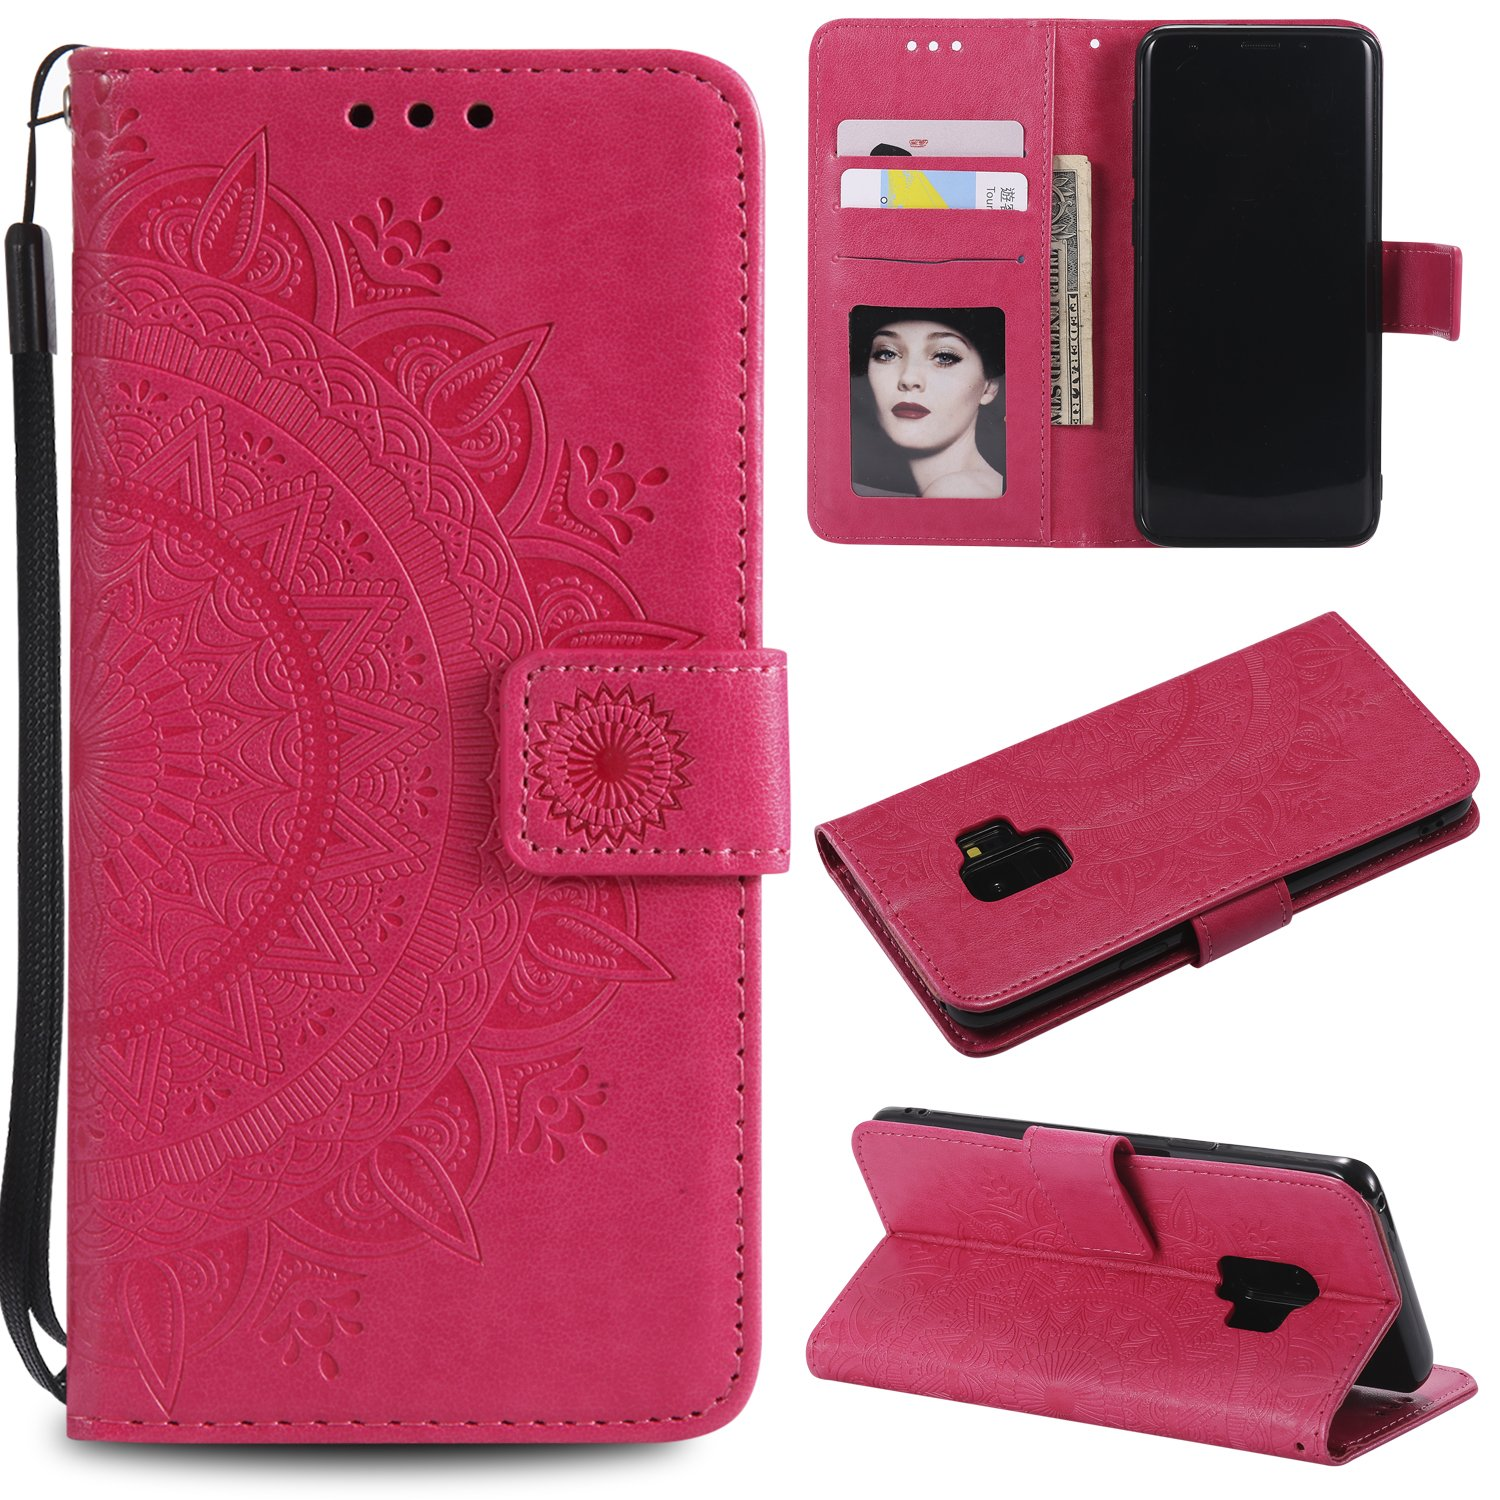 Galaxy S9 Floral Wallet Case,Galaxy S9 Strap Flip Case,Leecase Embossed Totem Flower Design Pu Leather Bookstyle Stand Flip Case for Samsung Galaxy S9-Red